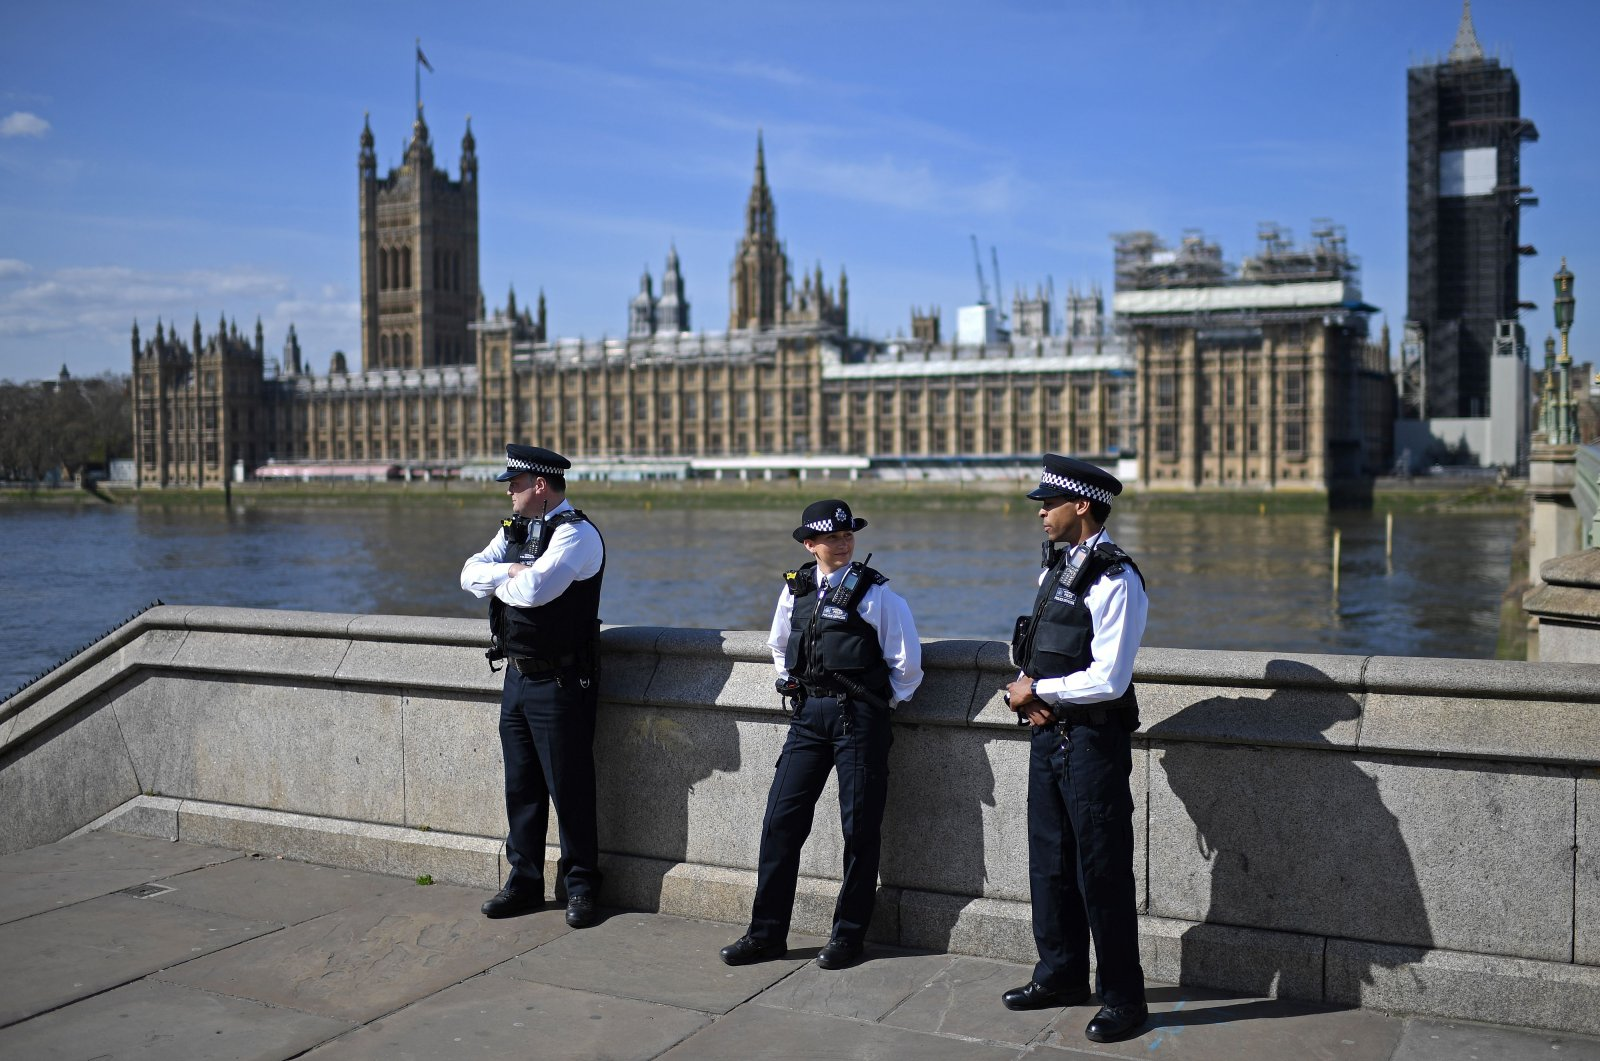 British police officers stand on duty outside St. Thomas' Hospital in central London, where Britain's Prime Minister Boris Johnson is in intensive care, Tuesday, April 7, 2020. (AFP Photo)